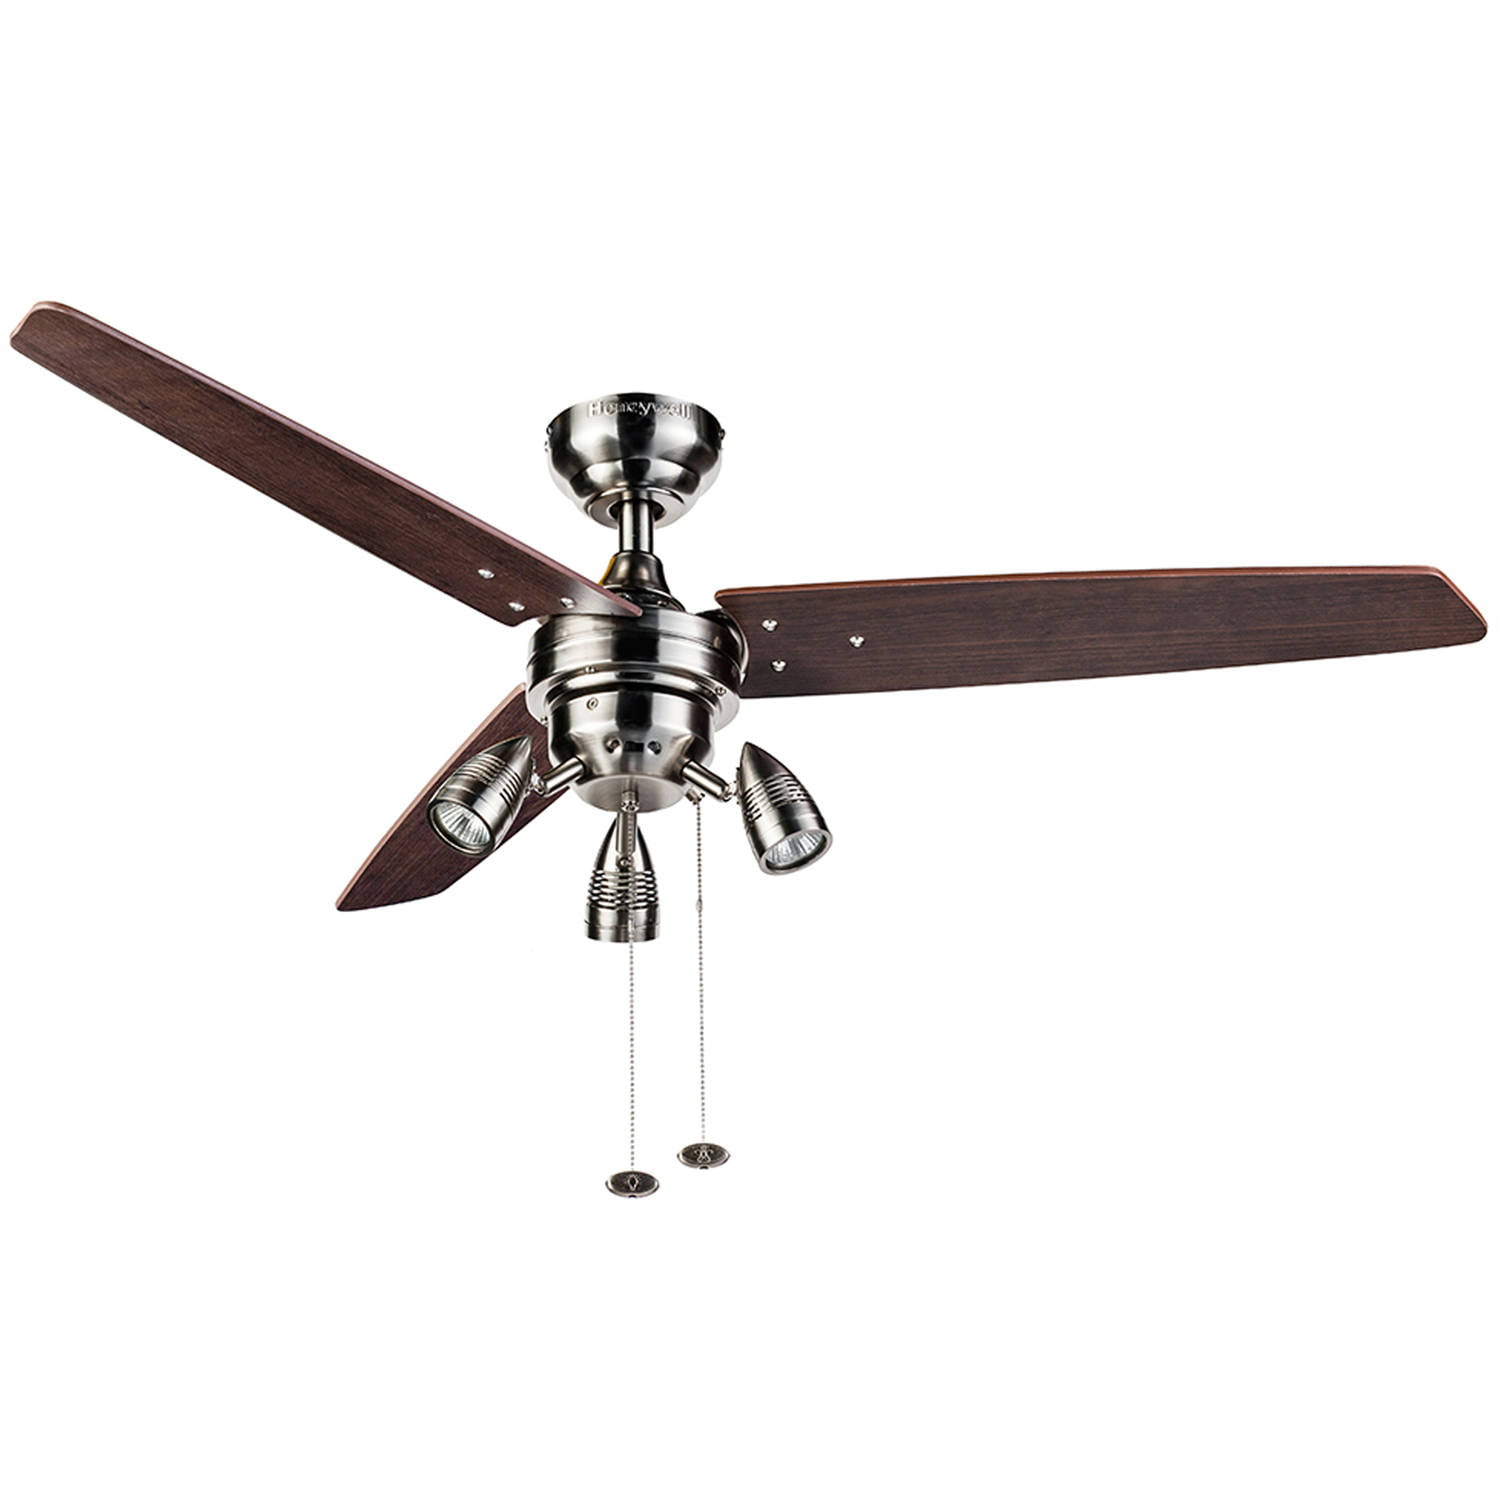 Big air 96 6 speed industrial ceiling fan in brushed nickel big air 96 6 speed industrial ceiling fan in brushed nickel walmart mozeypictures